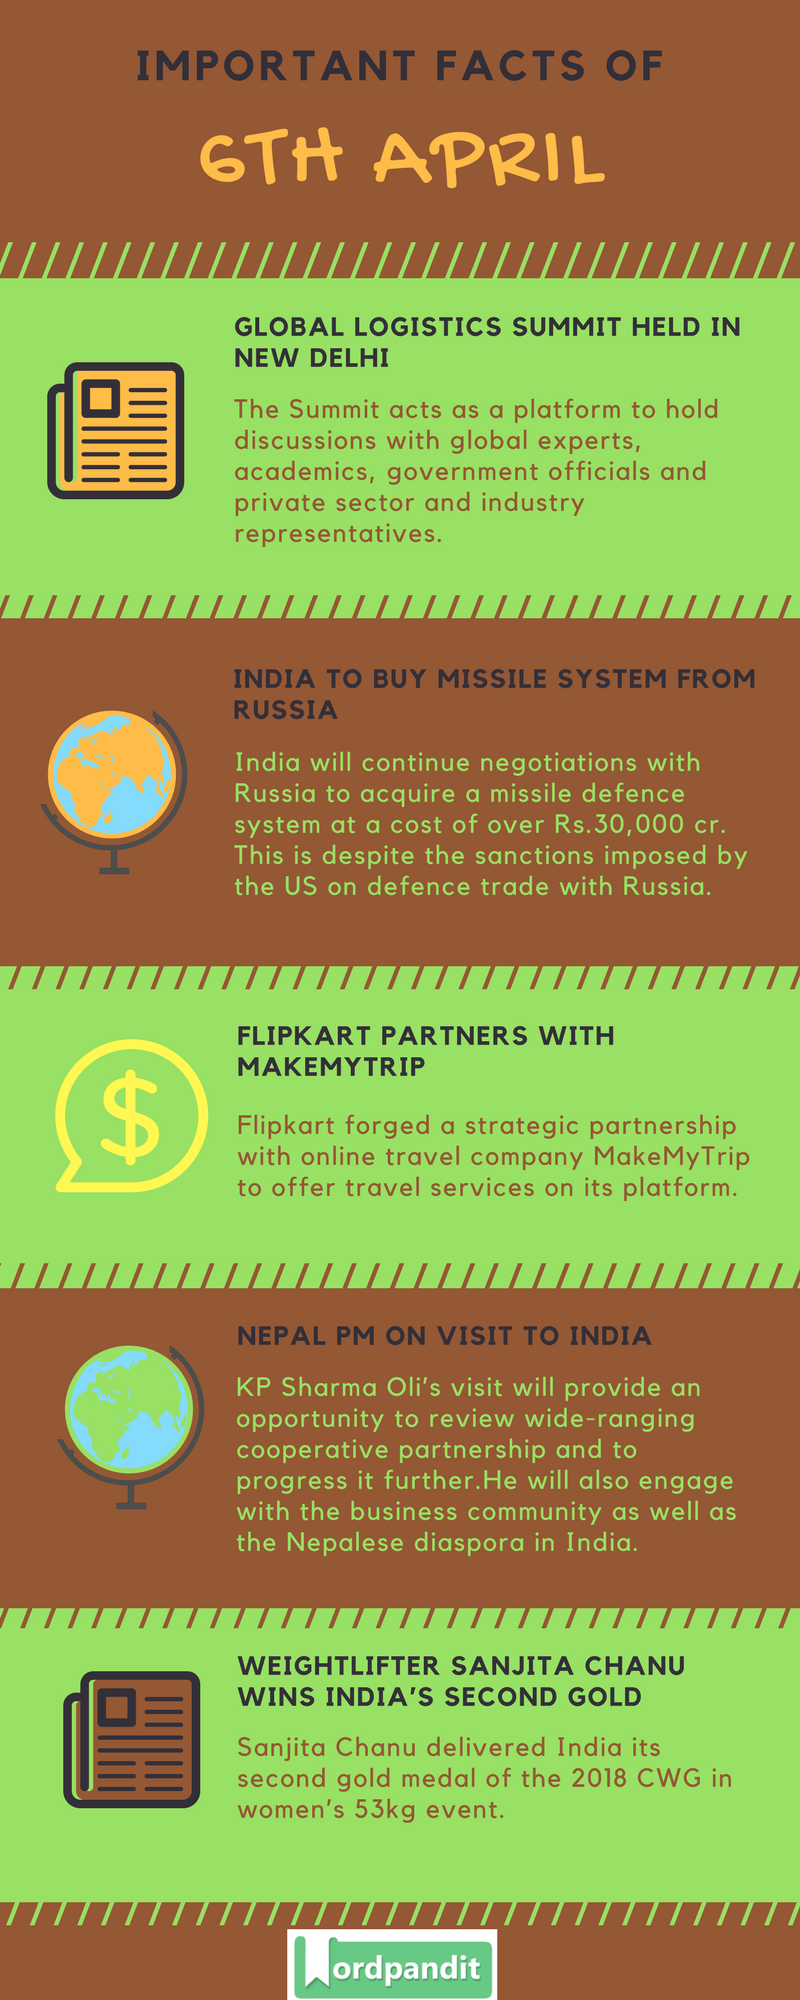 Daily Current Affairs 6 April 2018 Current Affairs Quiz April 6 2018 Current Affairs Infographic